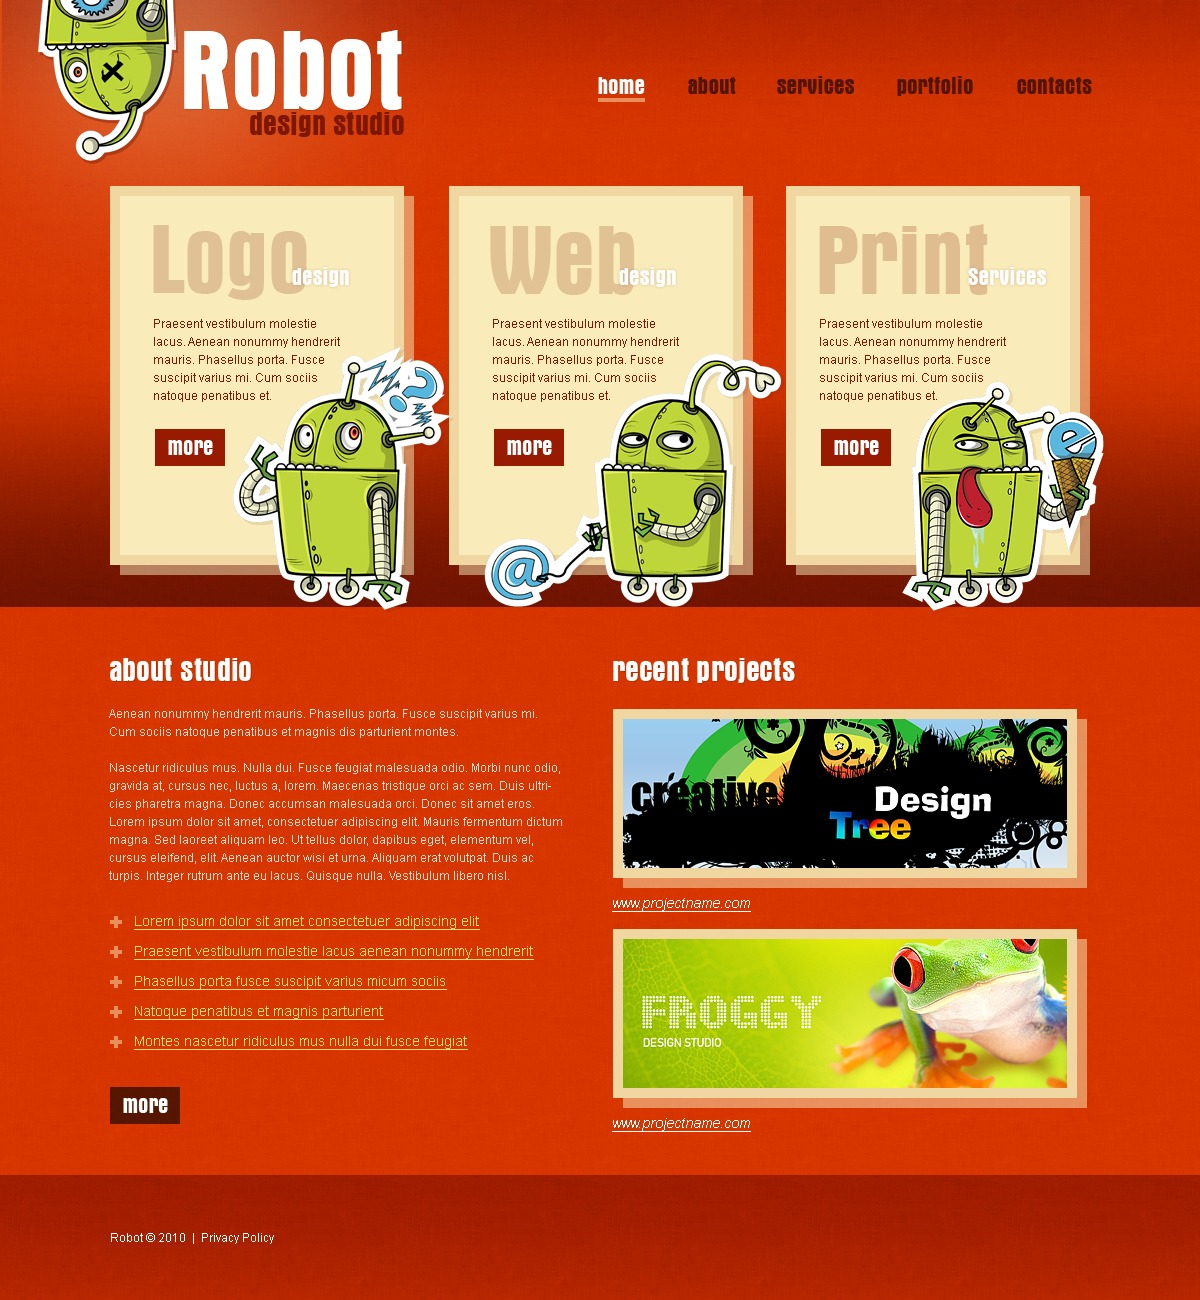 The Robot Design Studio PSD Design 54251, one of the best PSD templates of its kind (web design, wide), also known as robot design studio PSD template, creative art gallery PSD template, artists PSD template, painting PSD template, painters PSD template, web development PSD template, webmasters PSD template, designers PSD template, internet PSD template, www PSD template, sites PSD template, web design PSD template, webpage PSD template, personal portfolio and related with robot design studio, creative art gallery, artists, painting, painters, web development, webmasters, designers, internet, www, sites, web design, webpage, personal portfolio, etc.